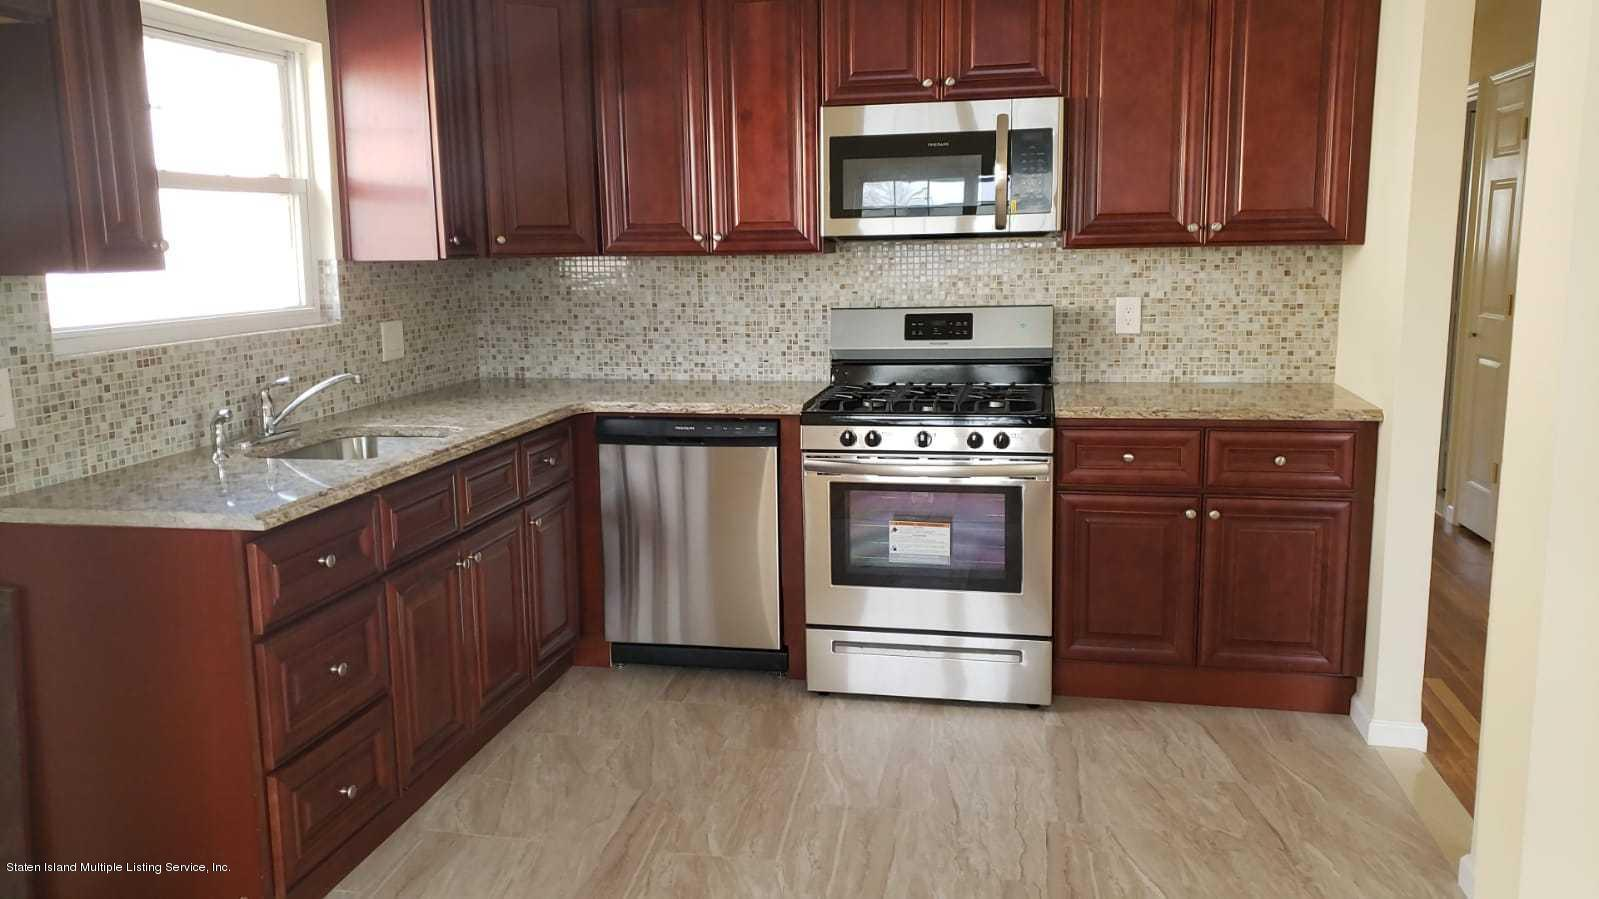 Single Family - Semi-Attached 505 Foster Road  Staten Island, NY 10309, MLS-1124398-4